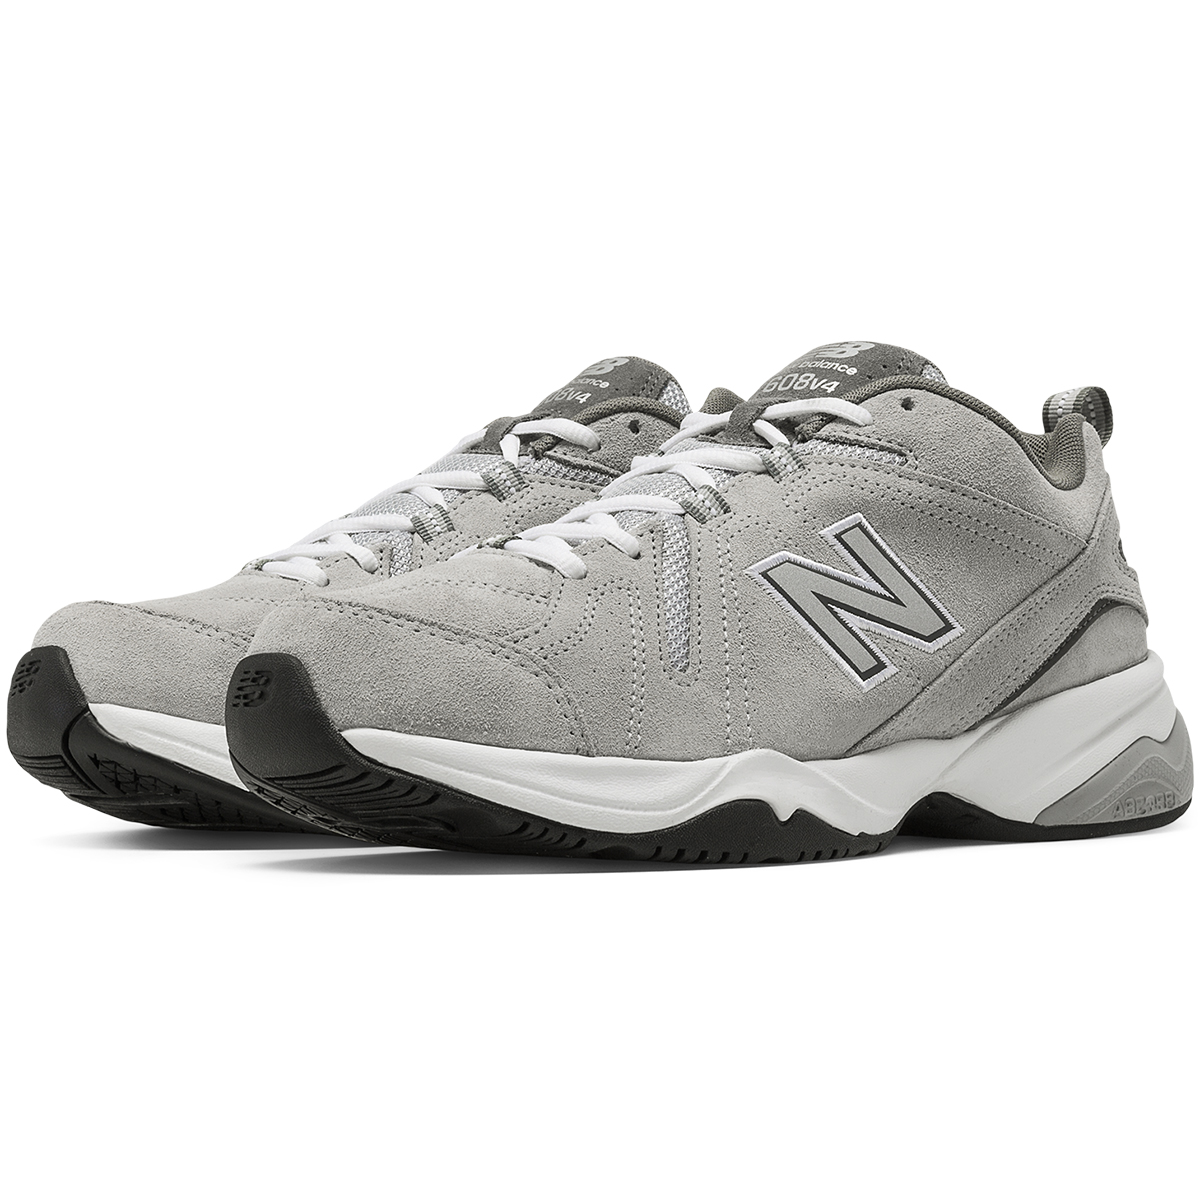 first look 2019 best arrives NEW BALANCE Men's 608v4 Sneakers, 4E Width - Bob's Stores